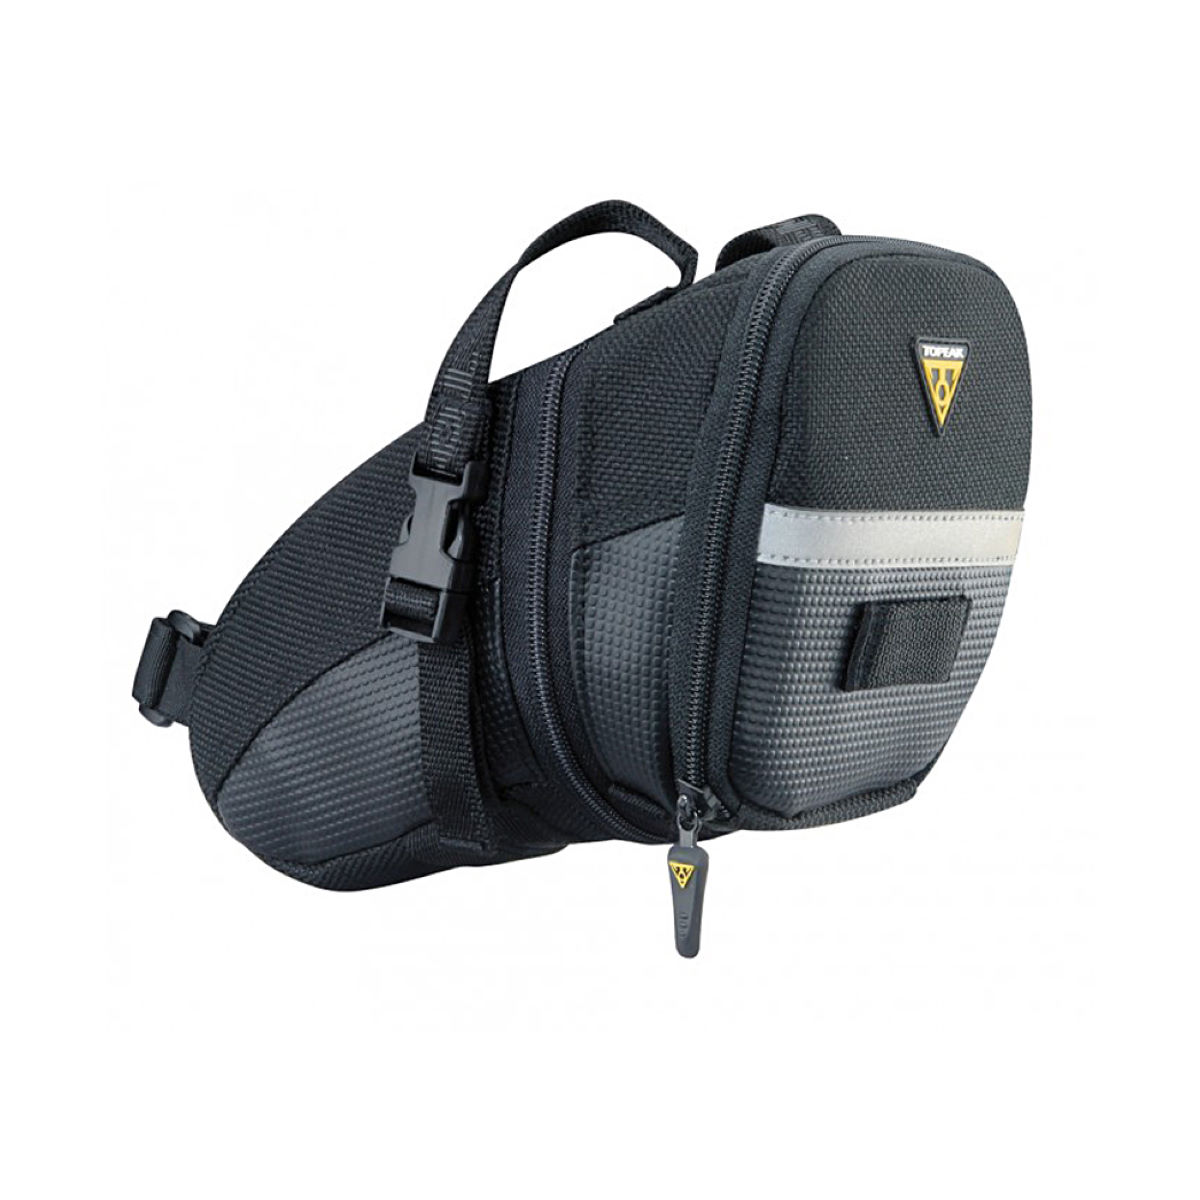 Topeak Aero Wedge (Buckle) Large Saddle Bag